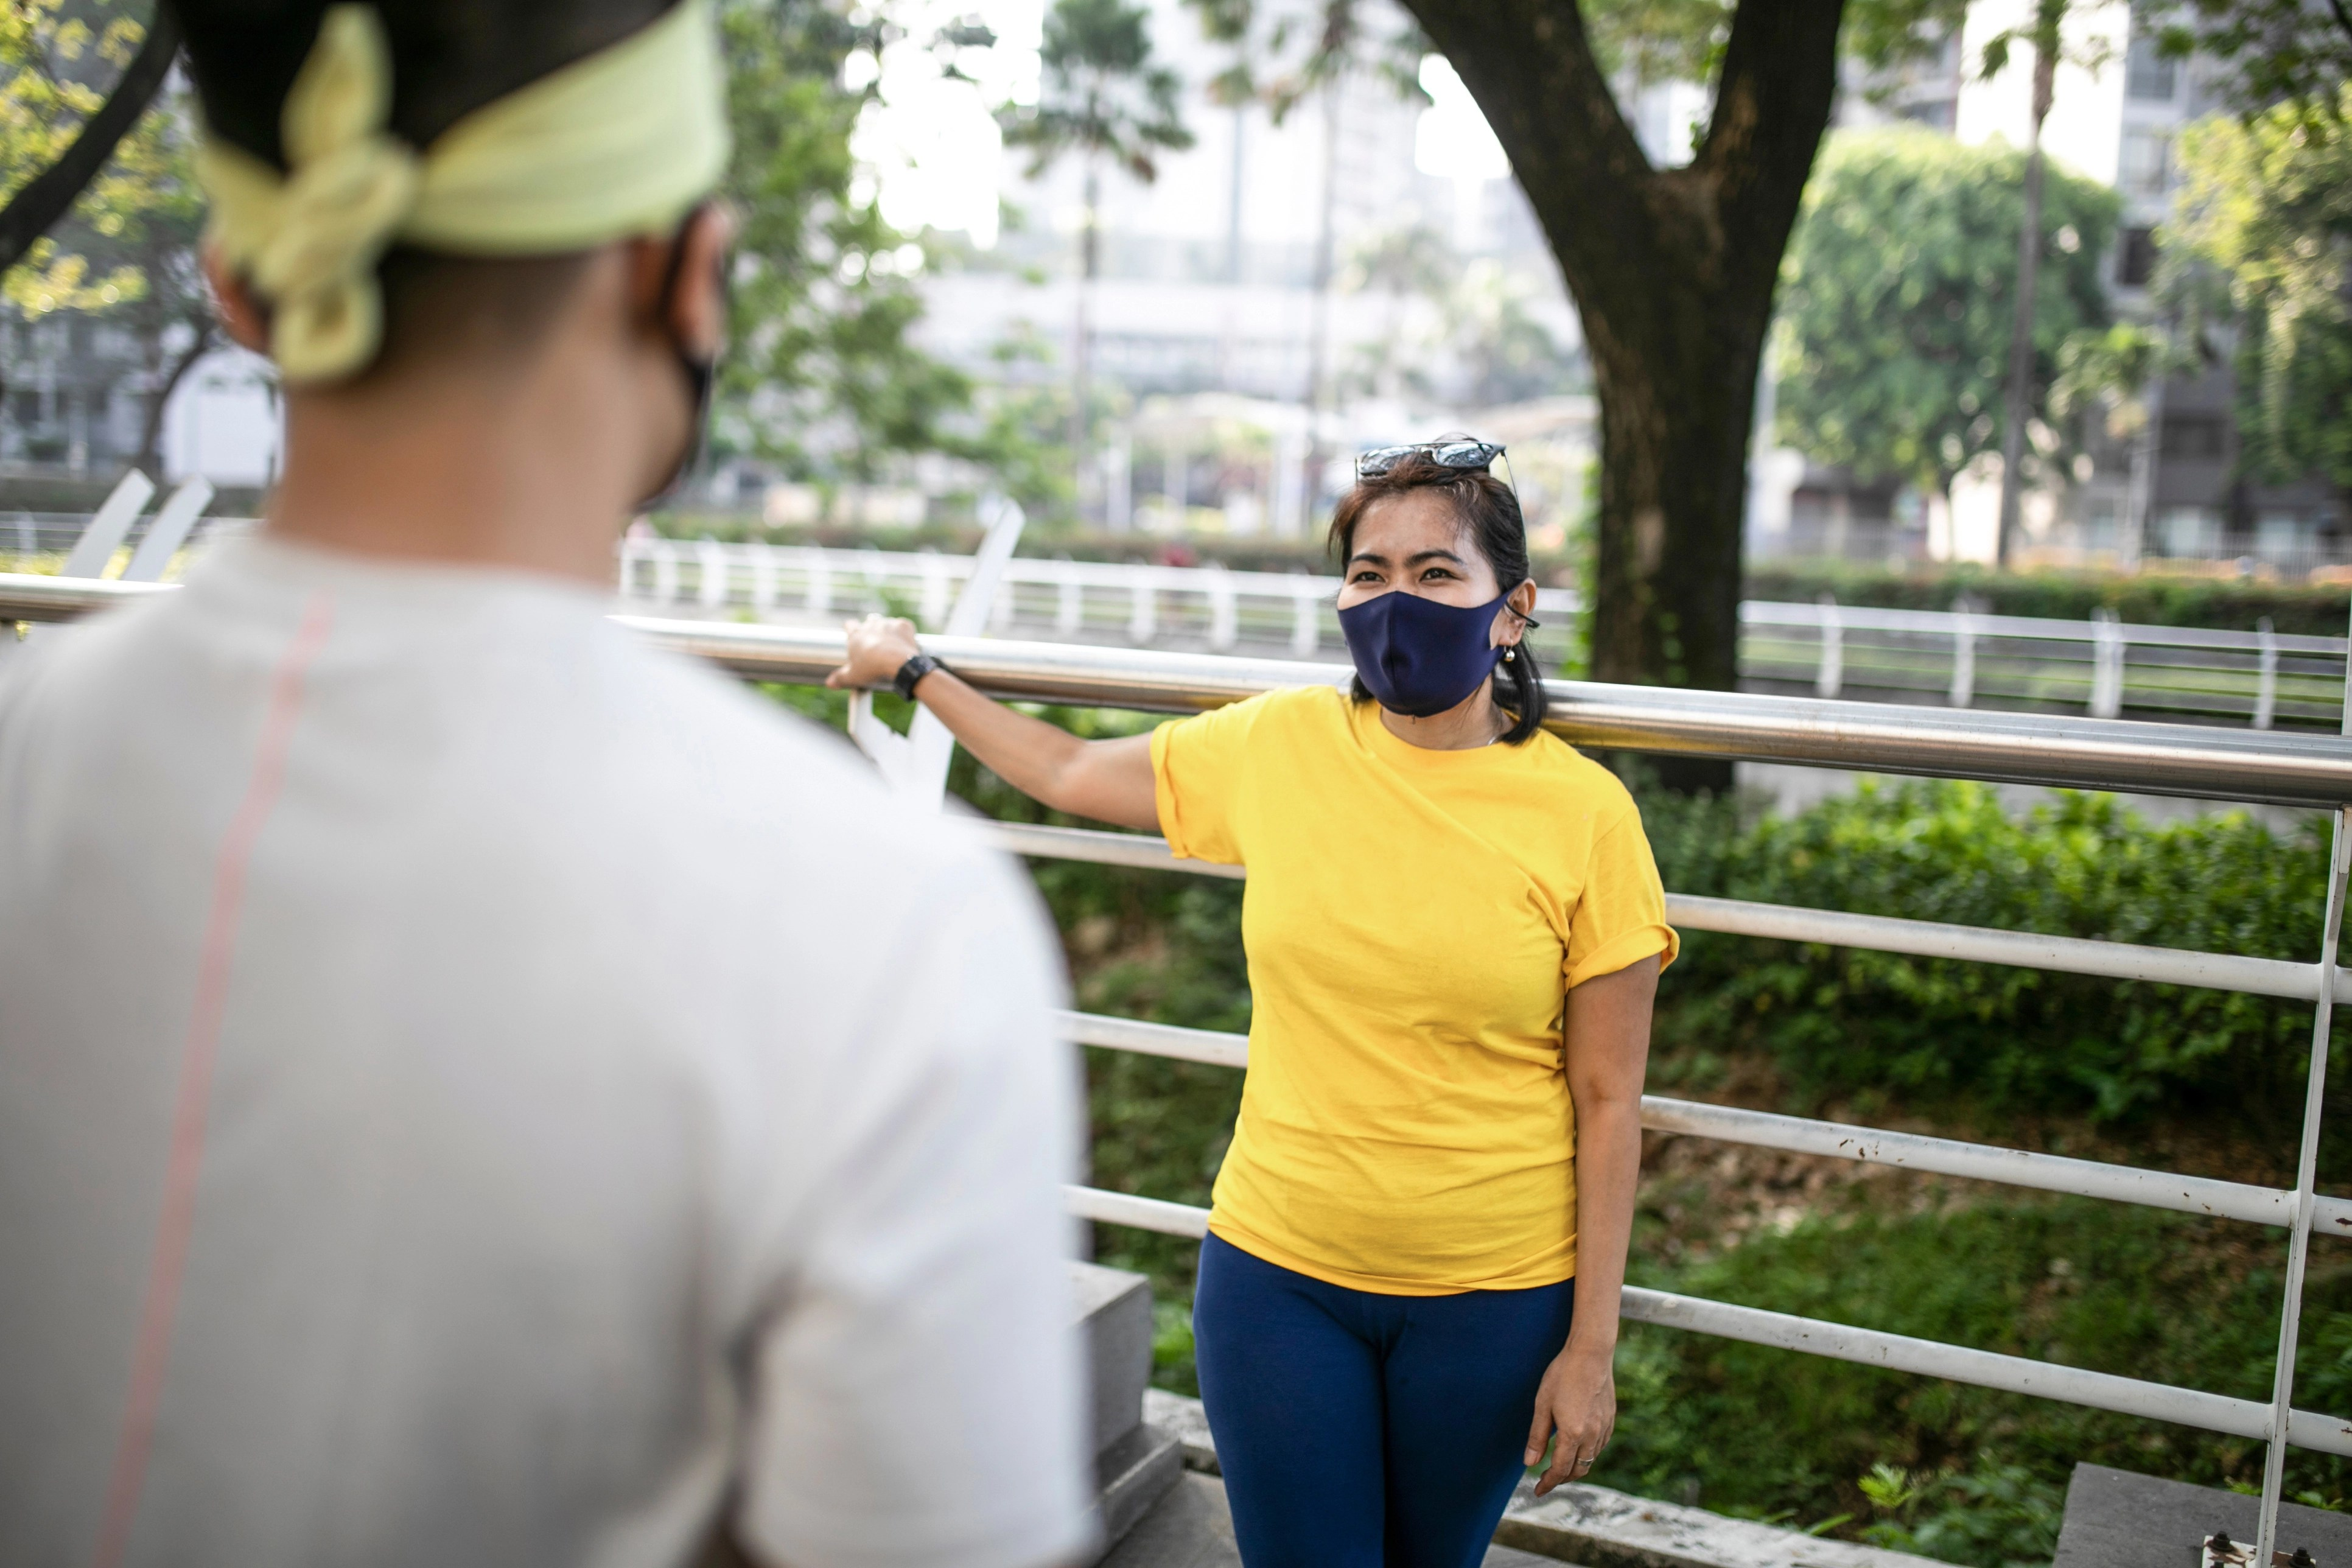 woman wearing a mask leaning against a railing